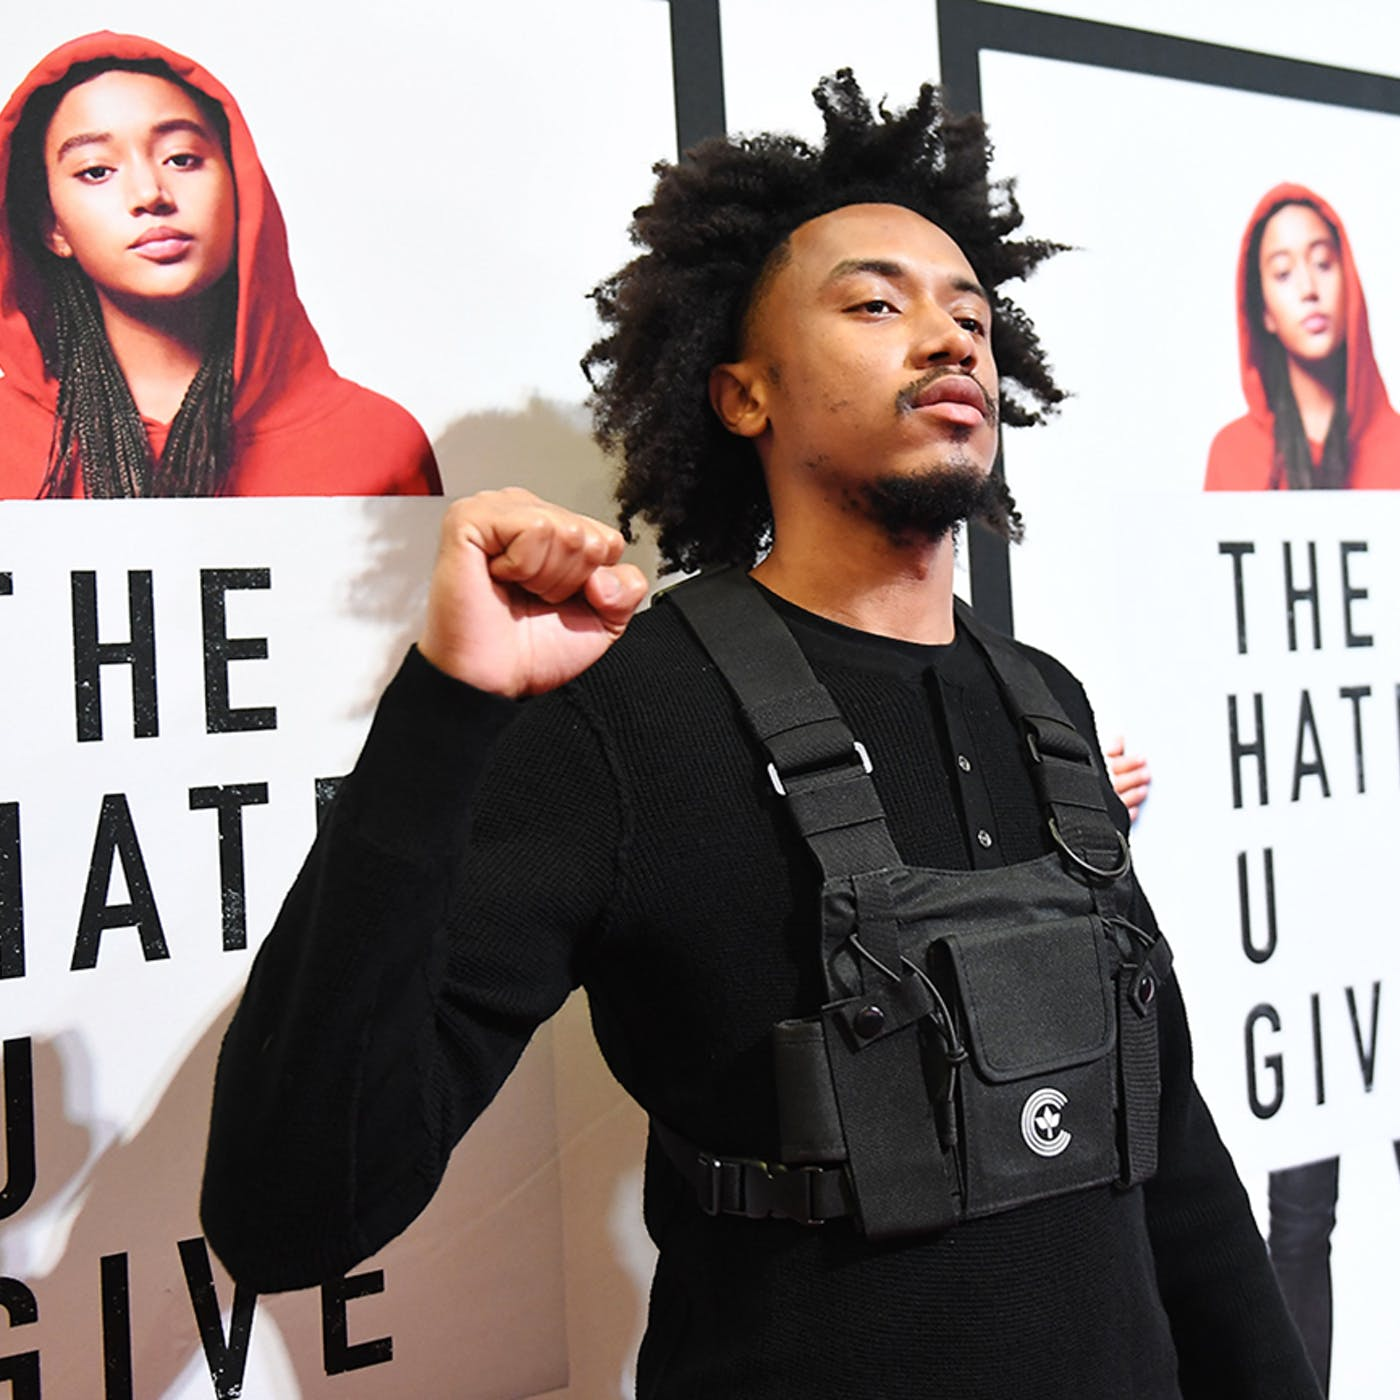 Bobby Sessions in front of poster for The Hate U Give